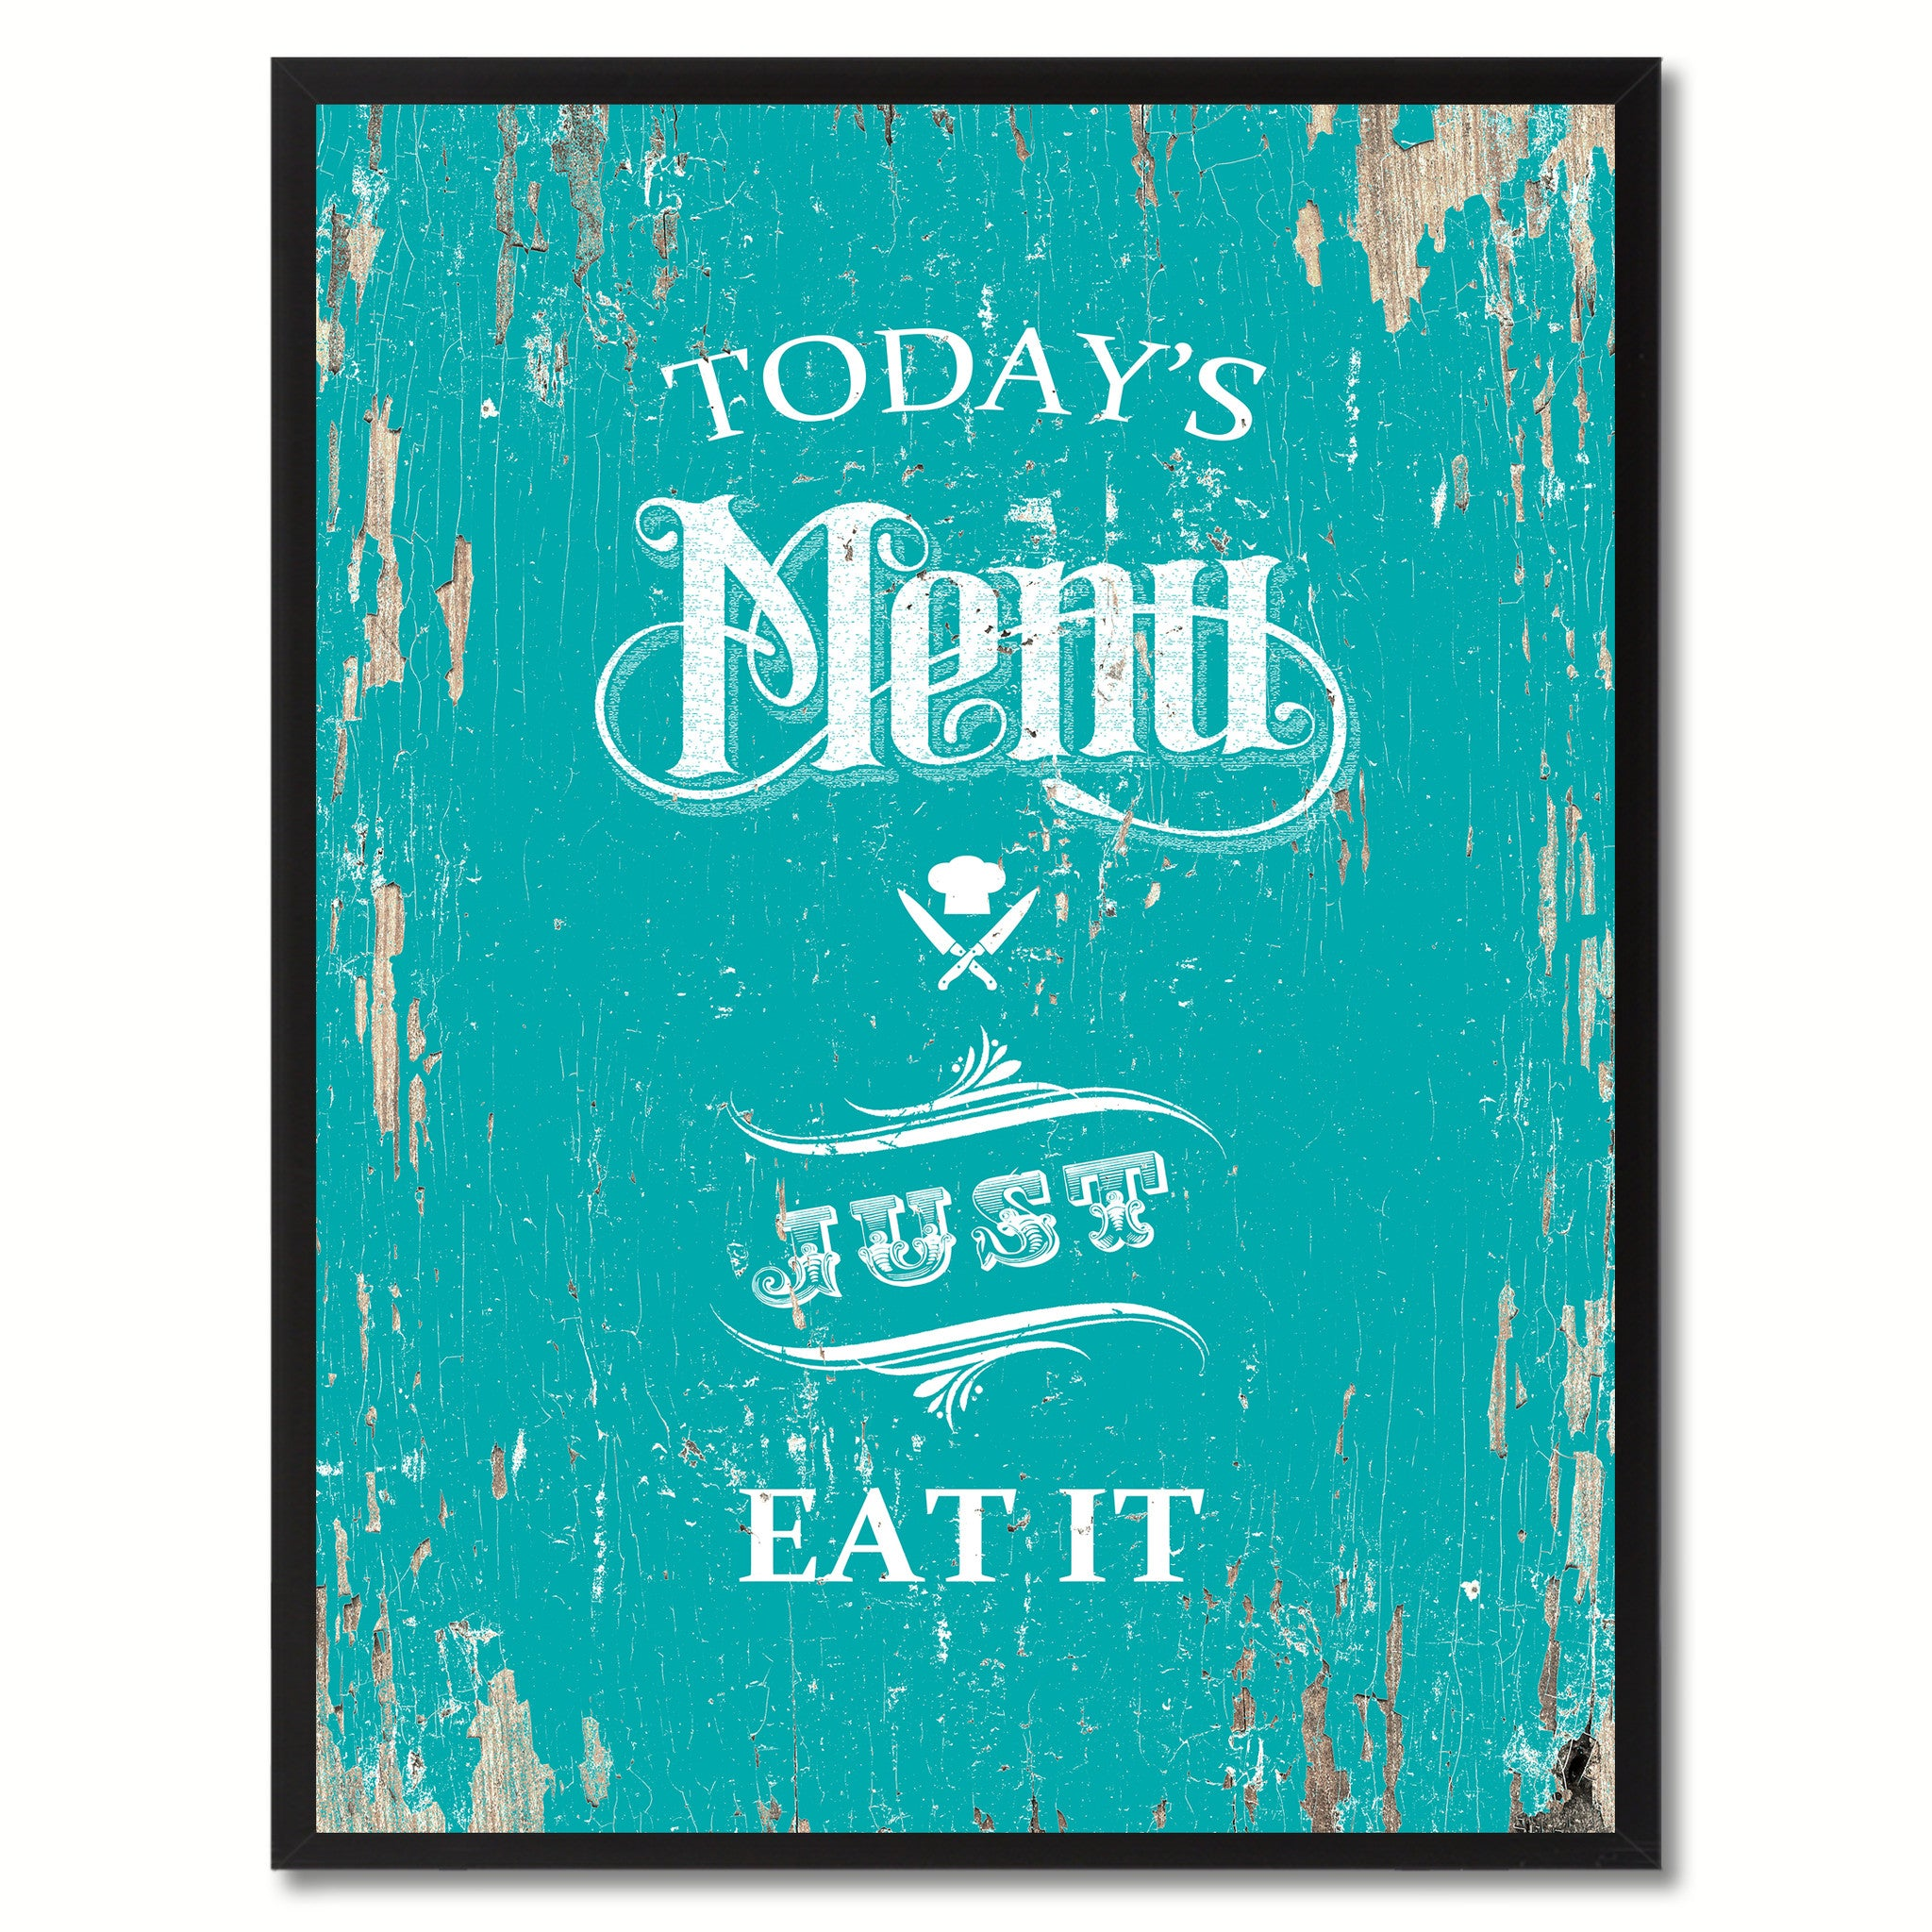 Today's menu just eat it Quote Saying Canvas Print with Picture Frame Home Decor Wall Art, Aqua